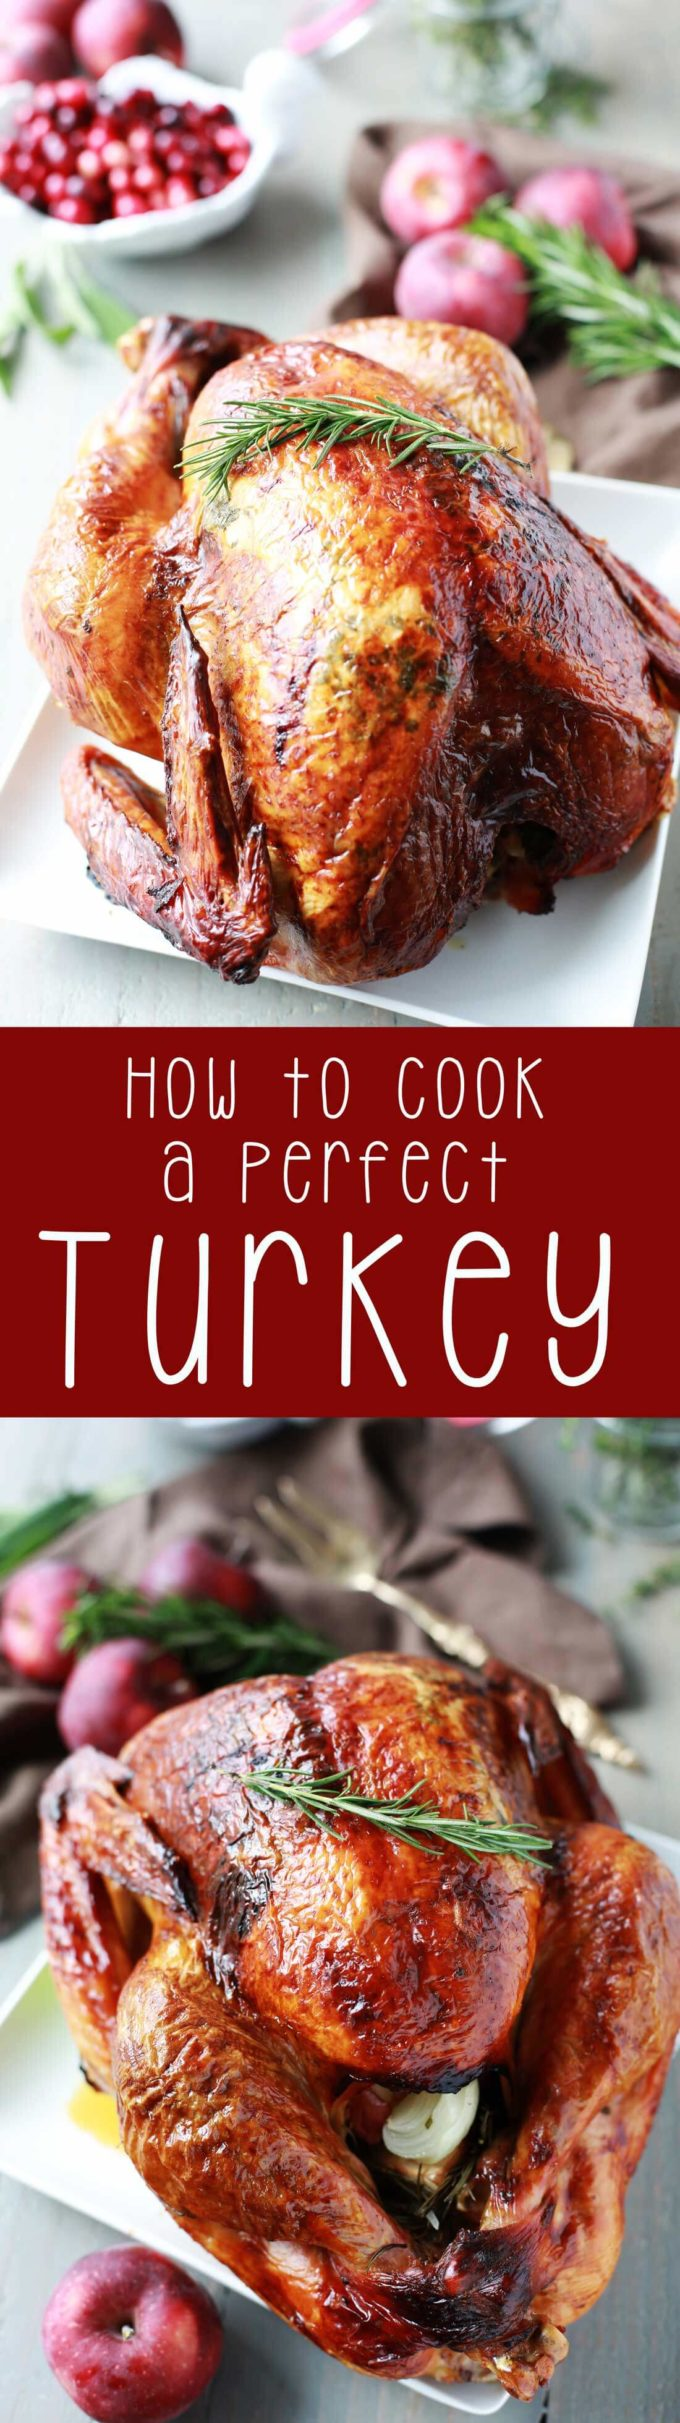 How to perfectly cook a thanksgiving turkey, and roast it in the oven.